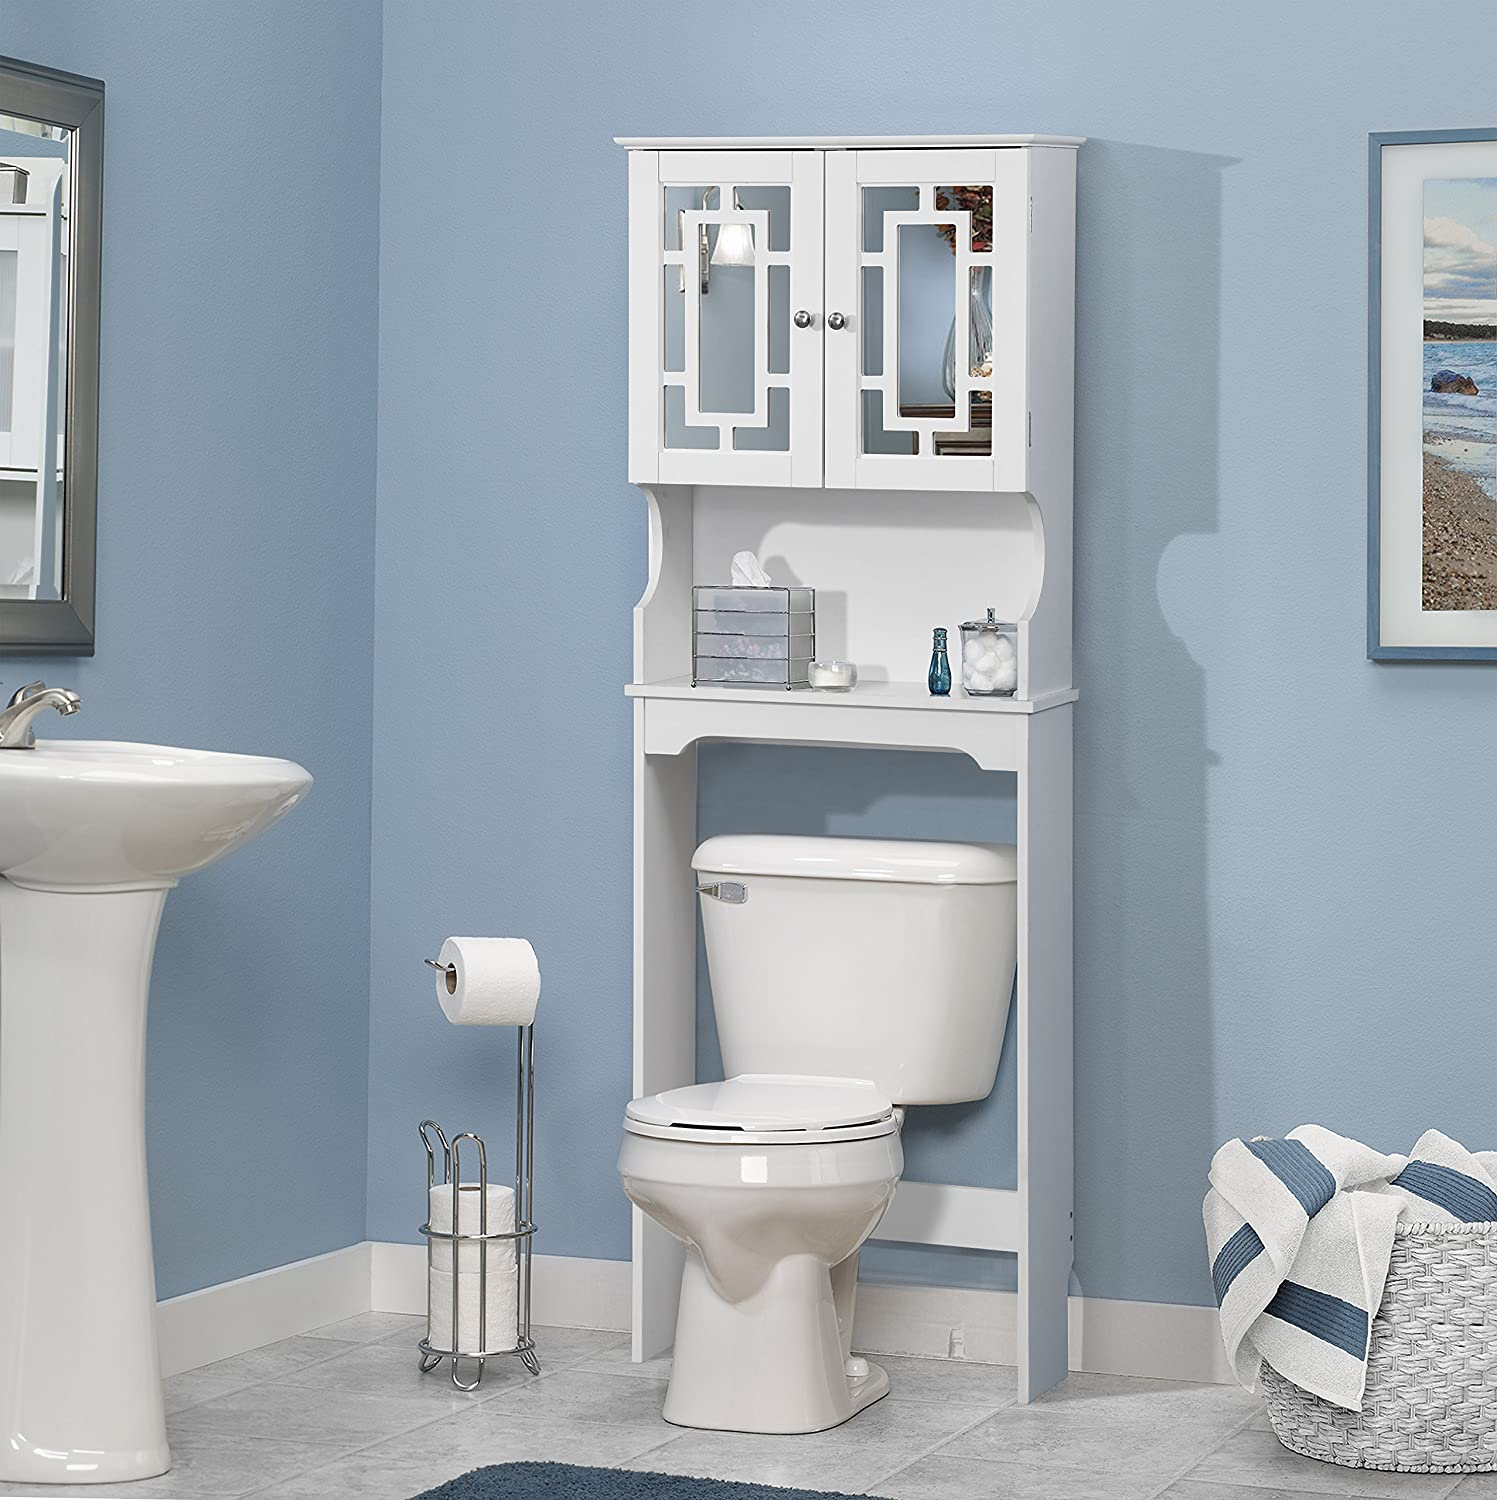 Home Source Industries Bathroom Space Saver with Shelf and 2-Door Mirrored Cabinet, White